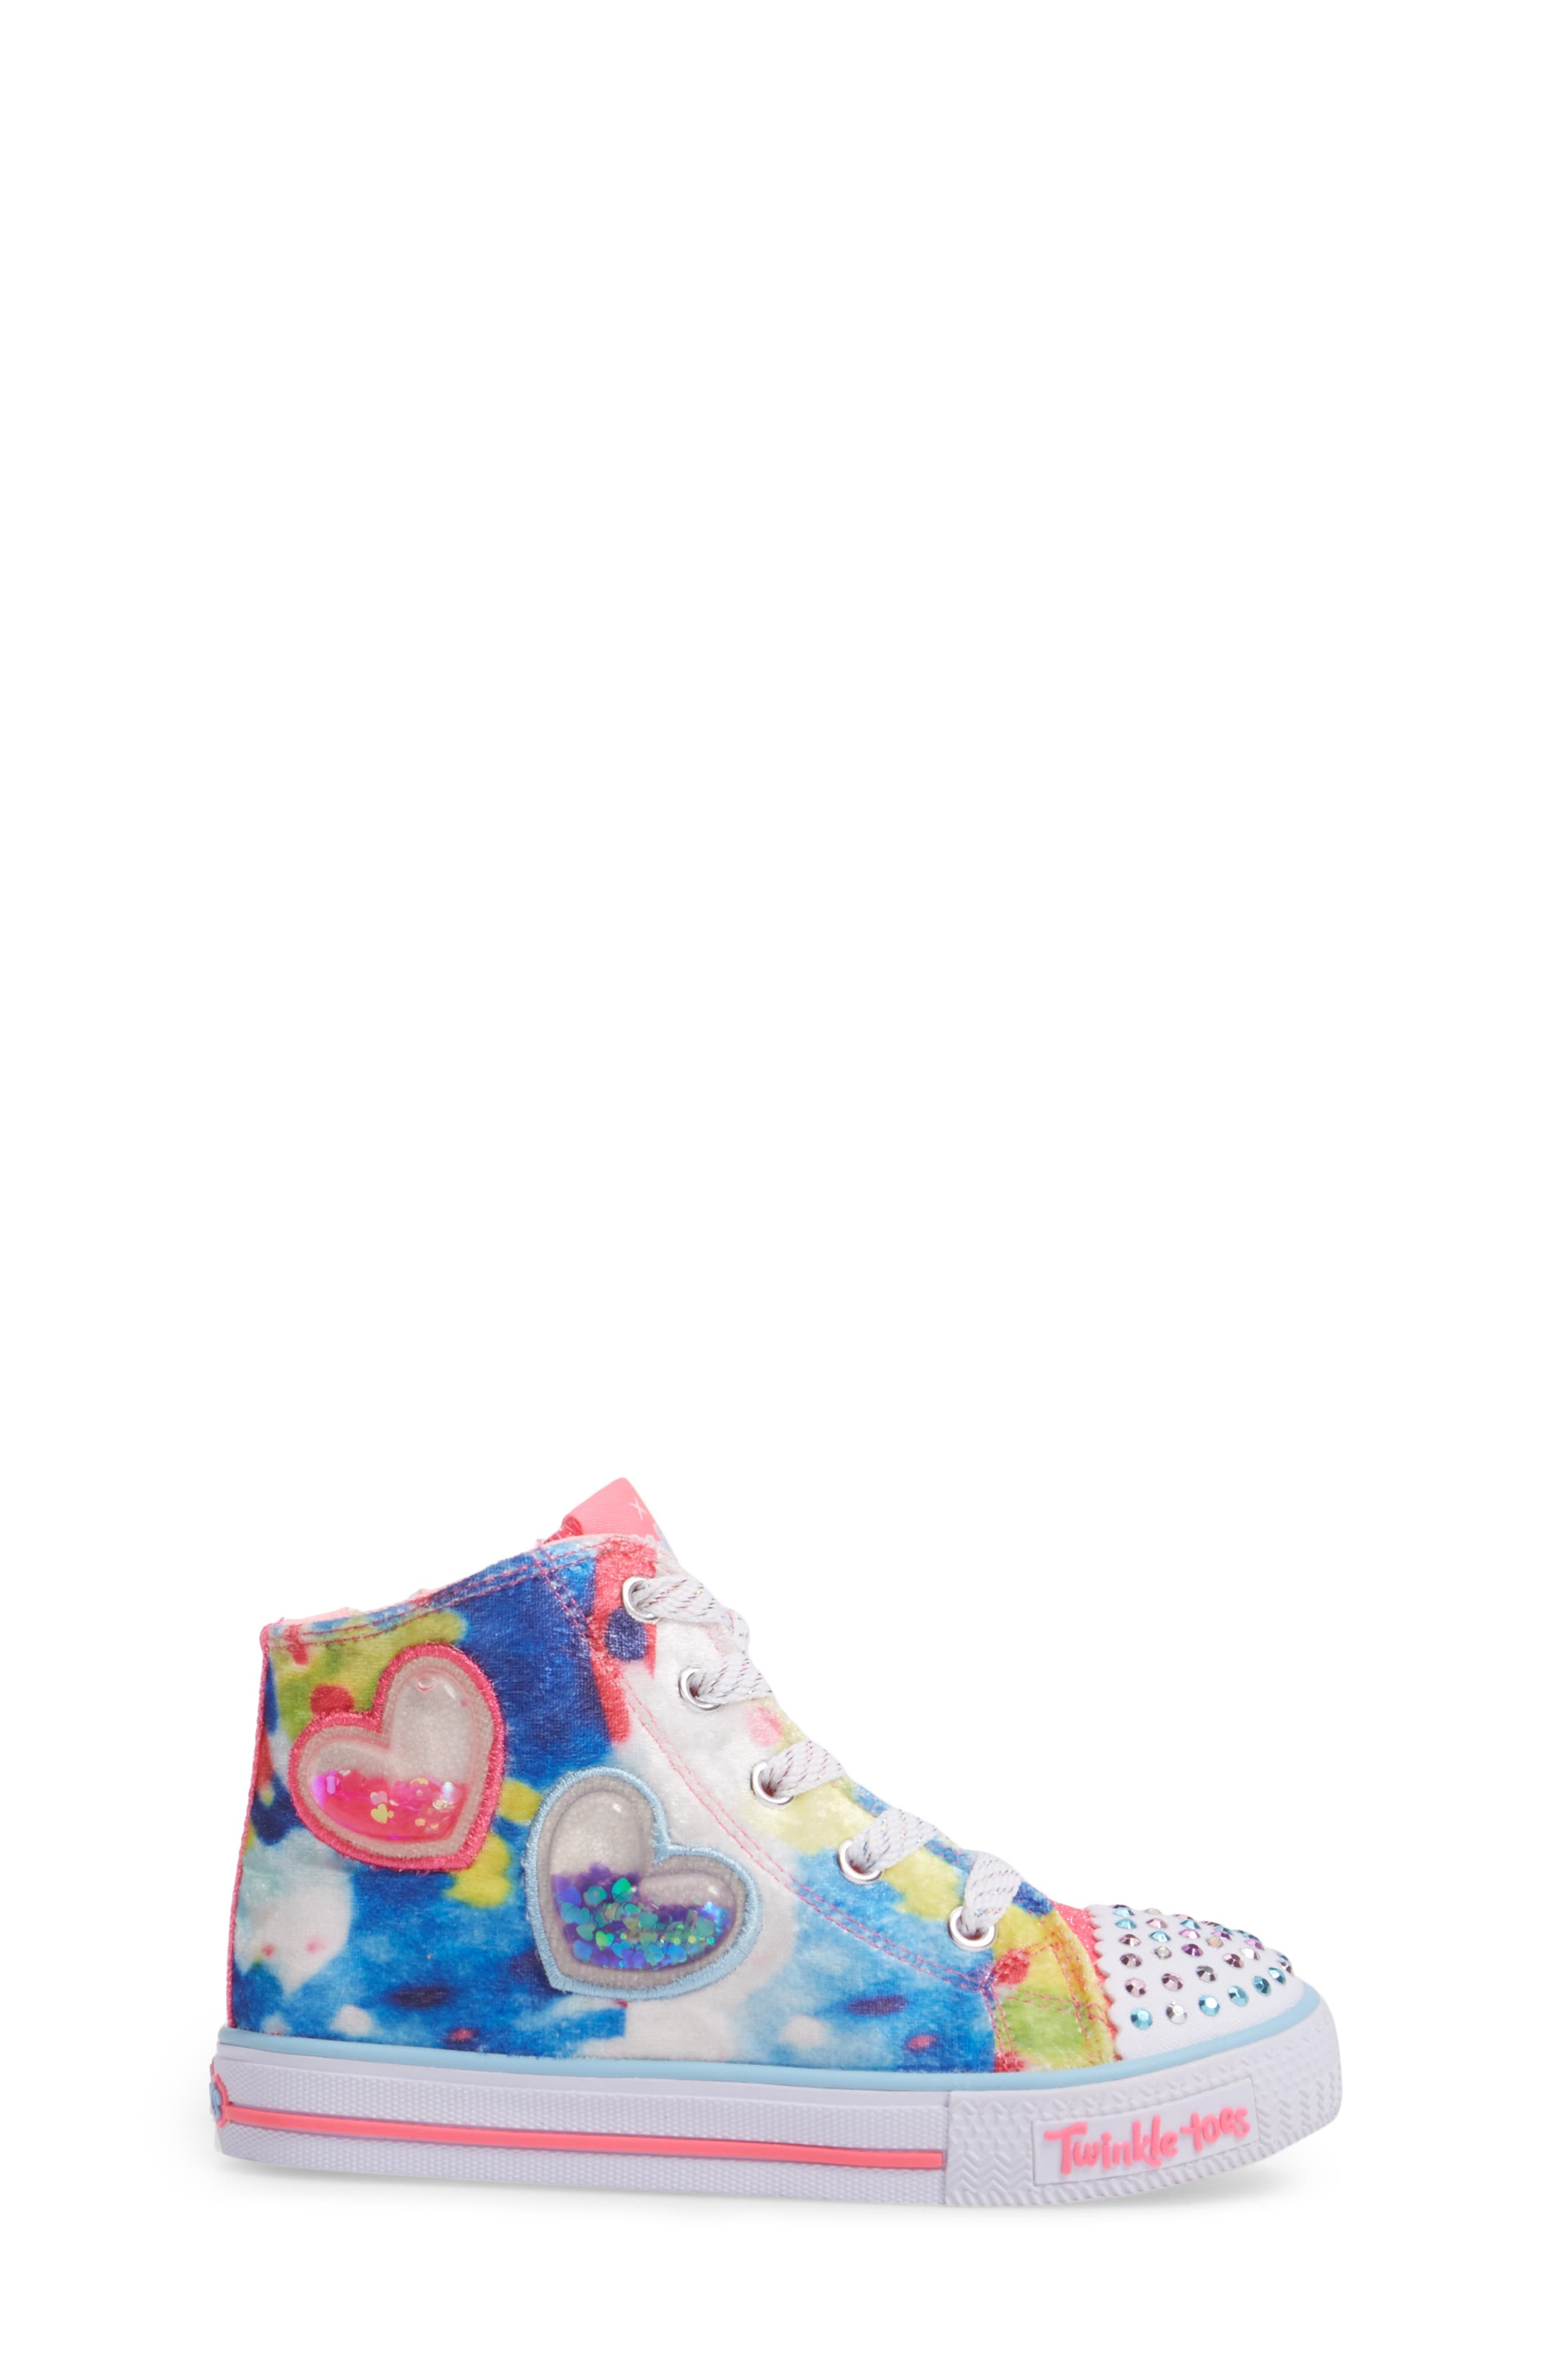 Twinkle Toes Shuffles Light-Up High Top Sneaker,                             Alternate thumbnail 6, color,